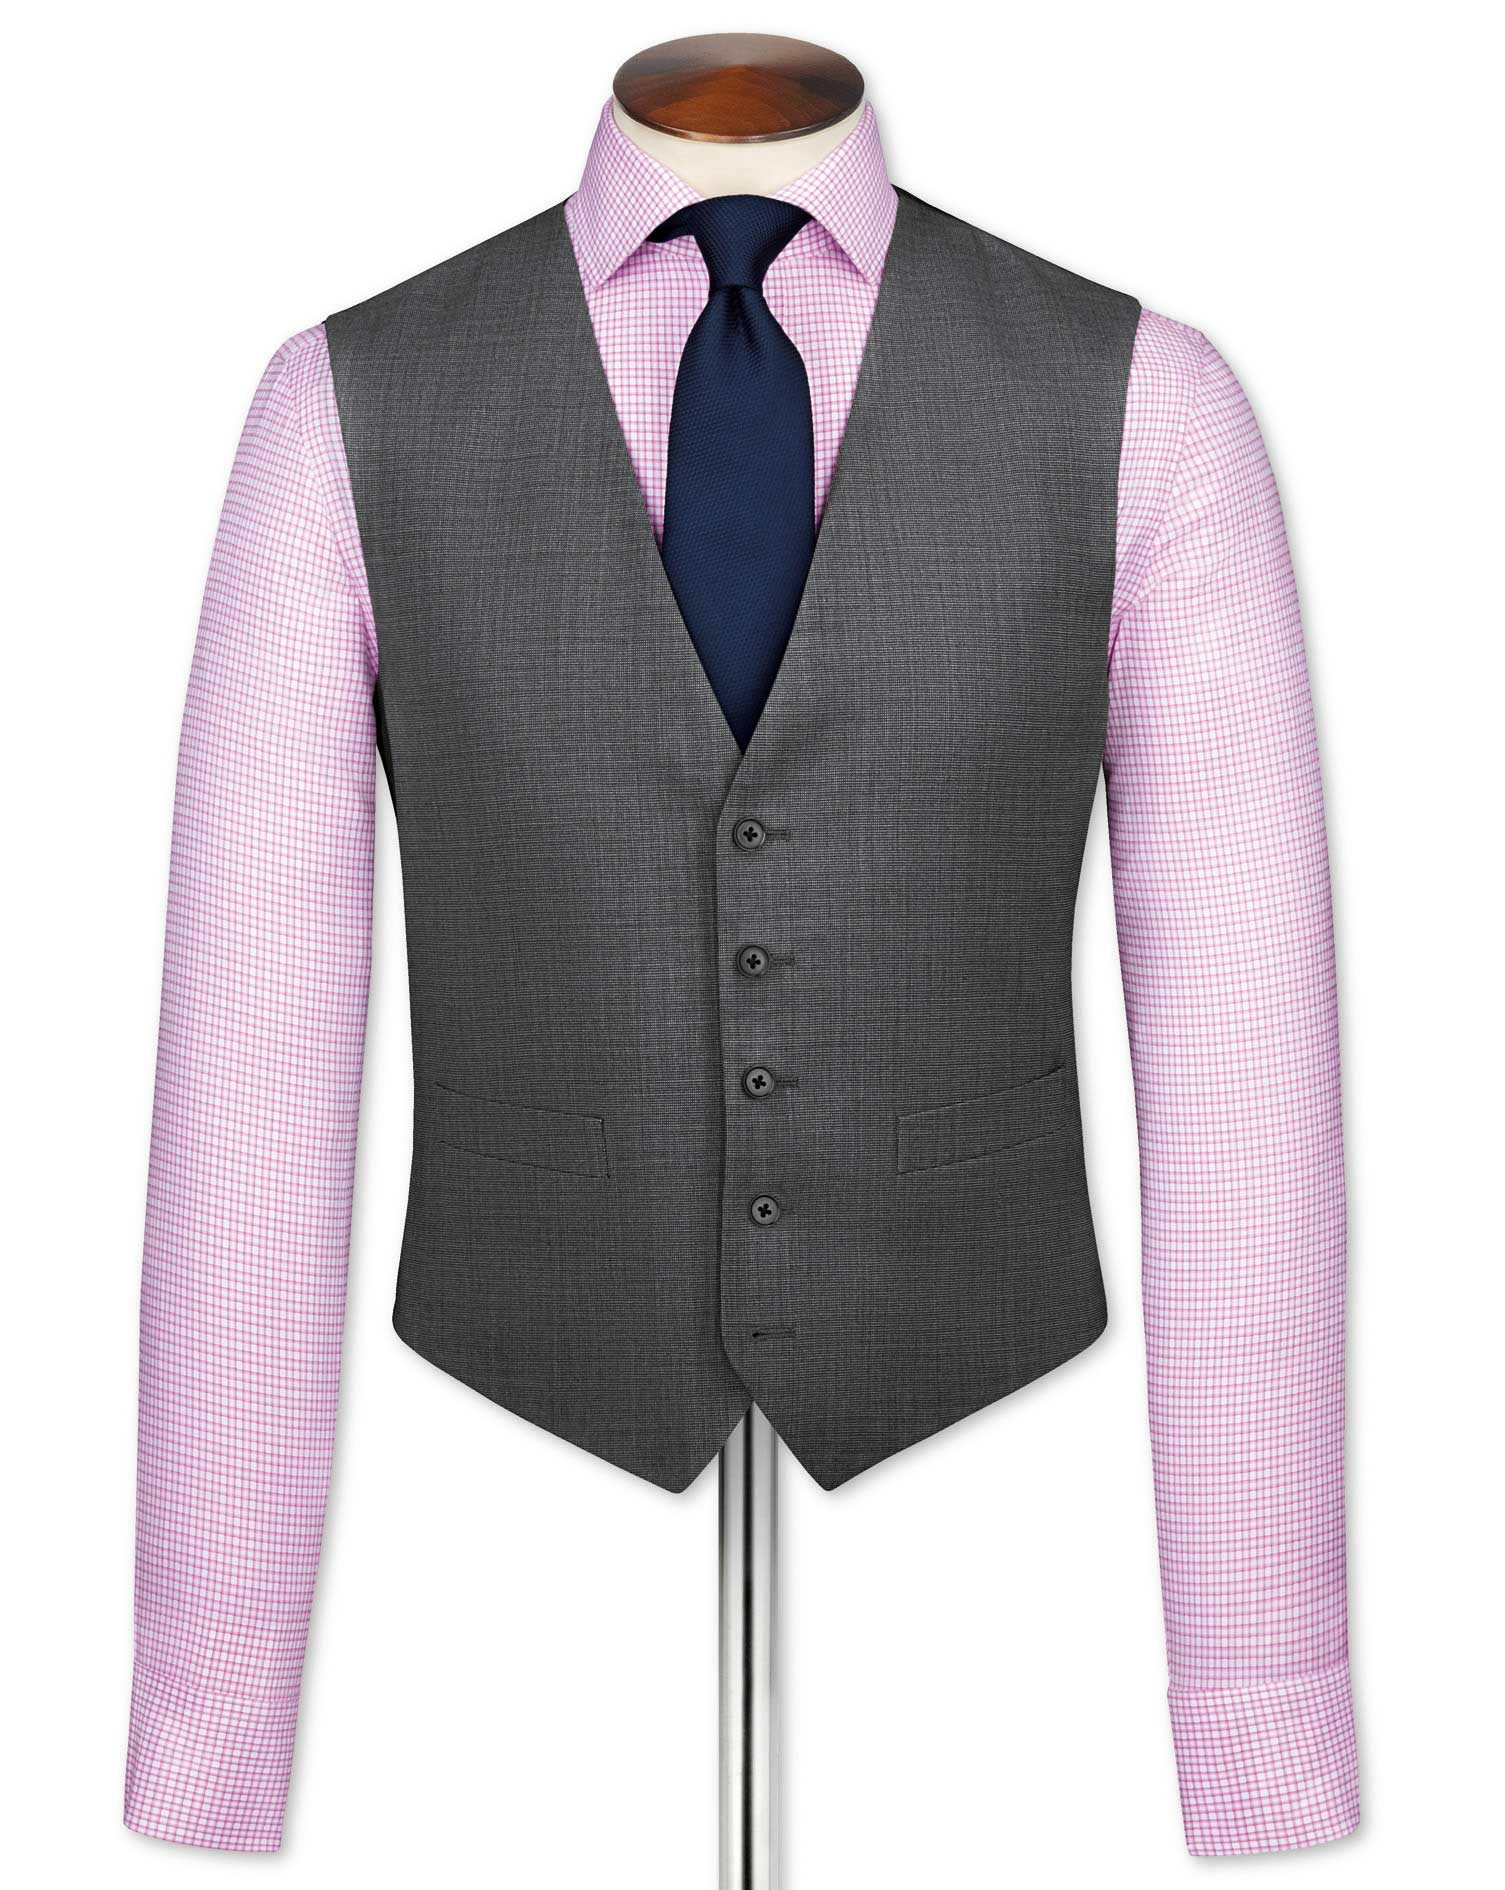 Grey end-on-end business suit waistcoat